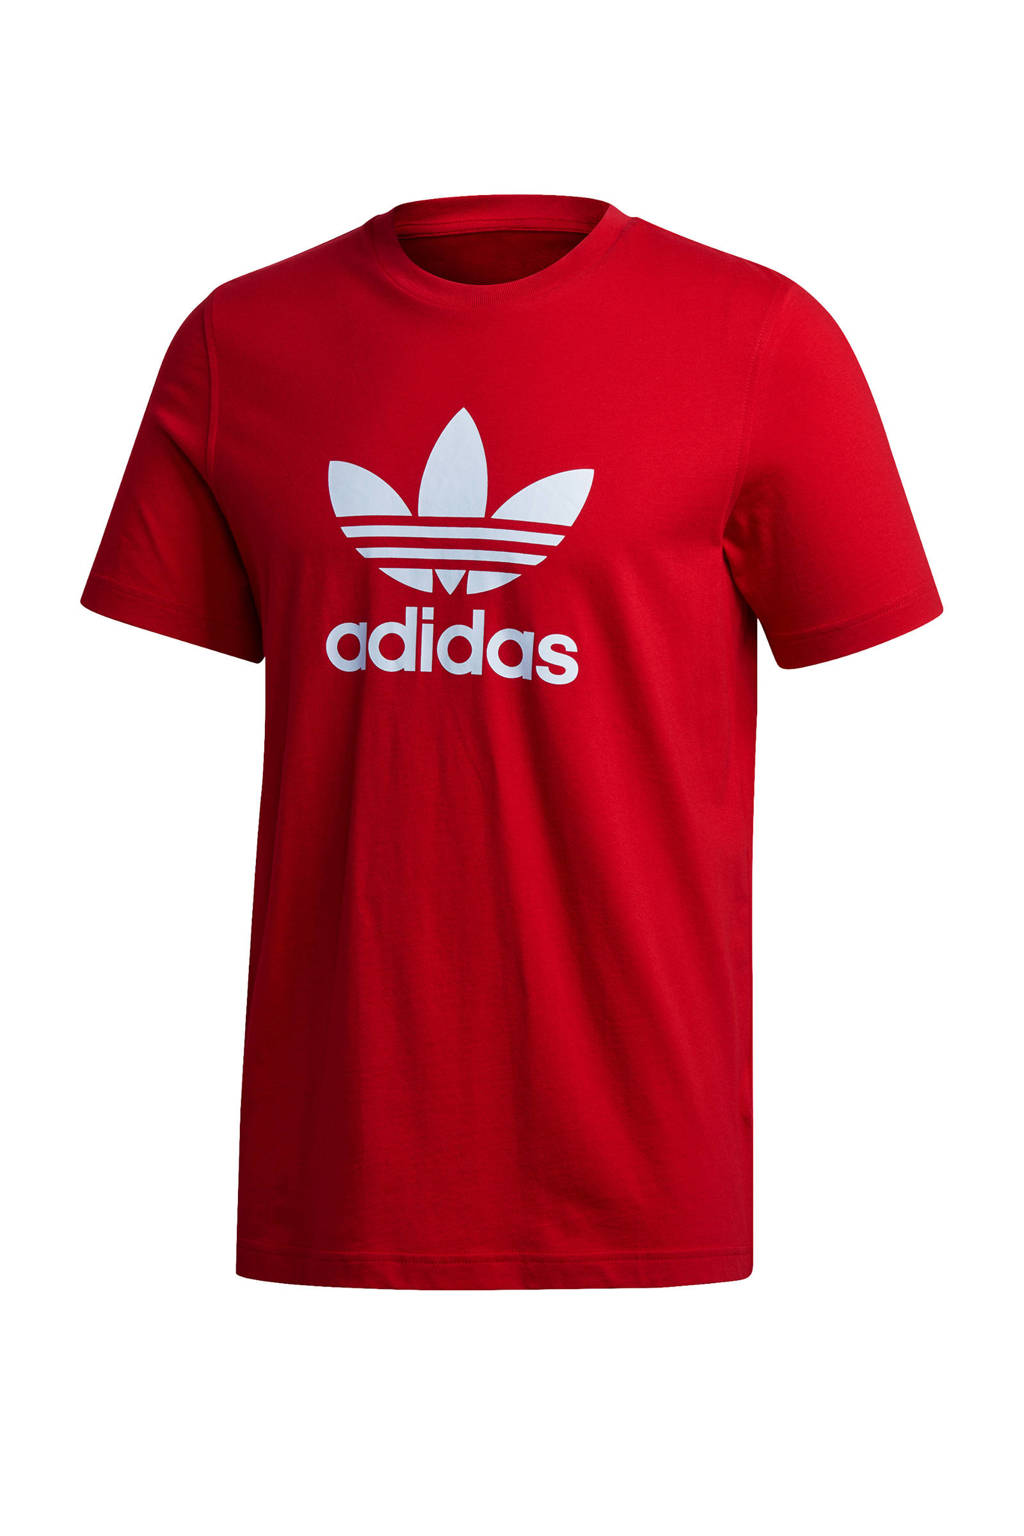 adidas Originals Adicolor T-shirt donkerrood, Donkerrood